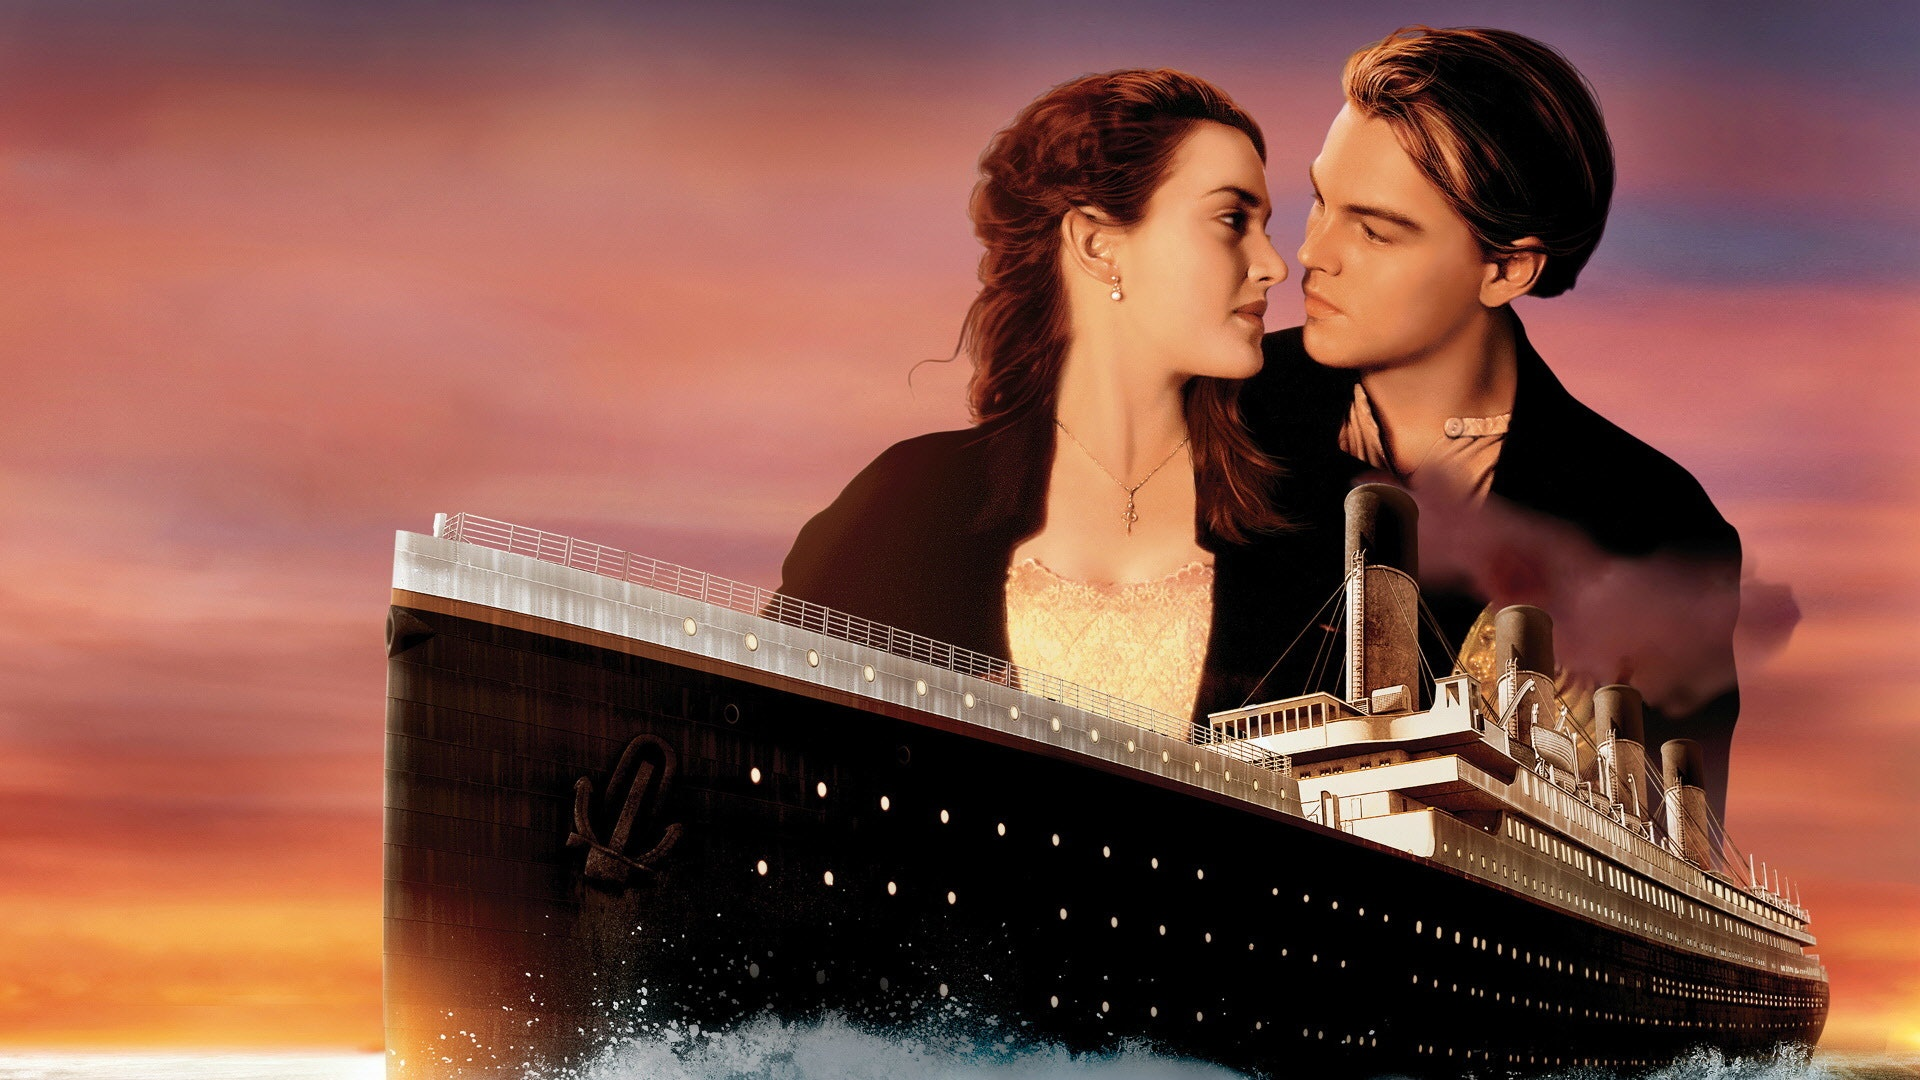 Titanic 1997 Soundtrack Music Complete Song List Tunefind